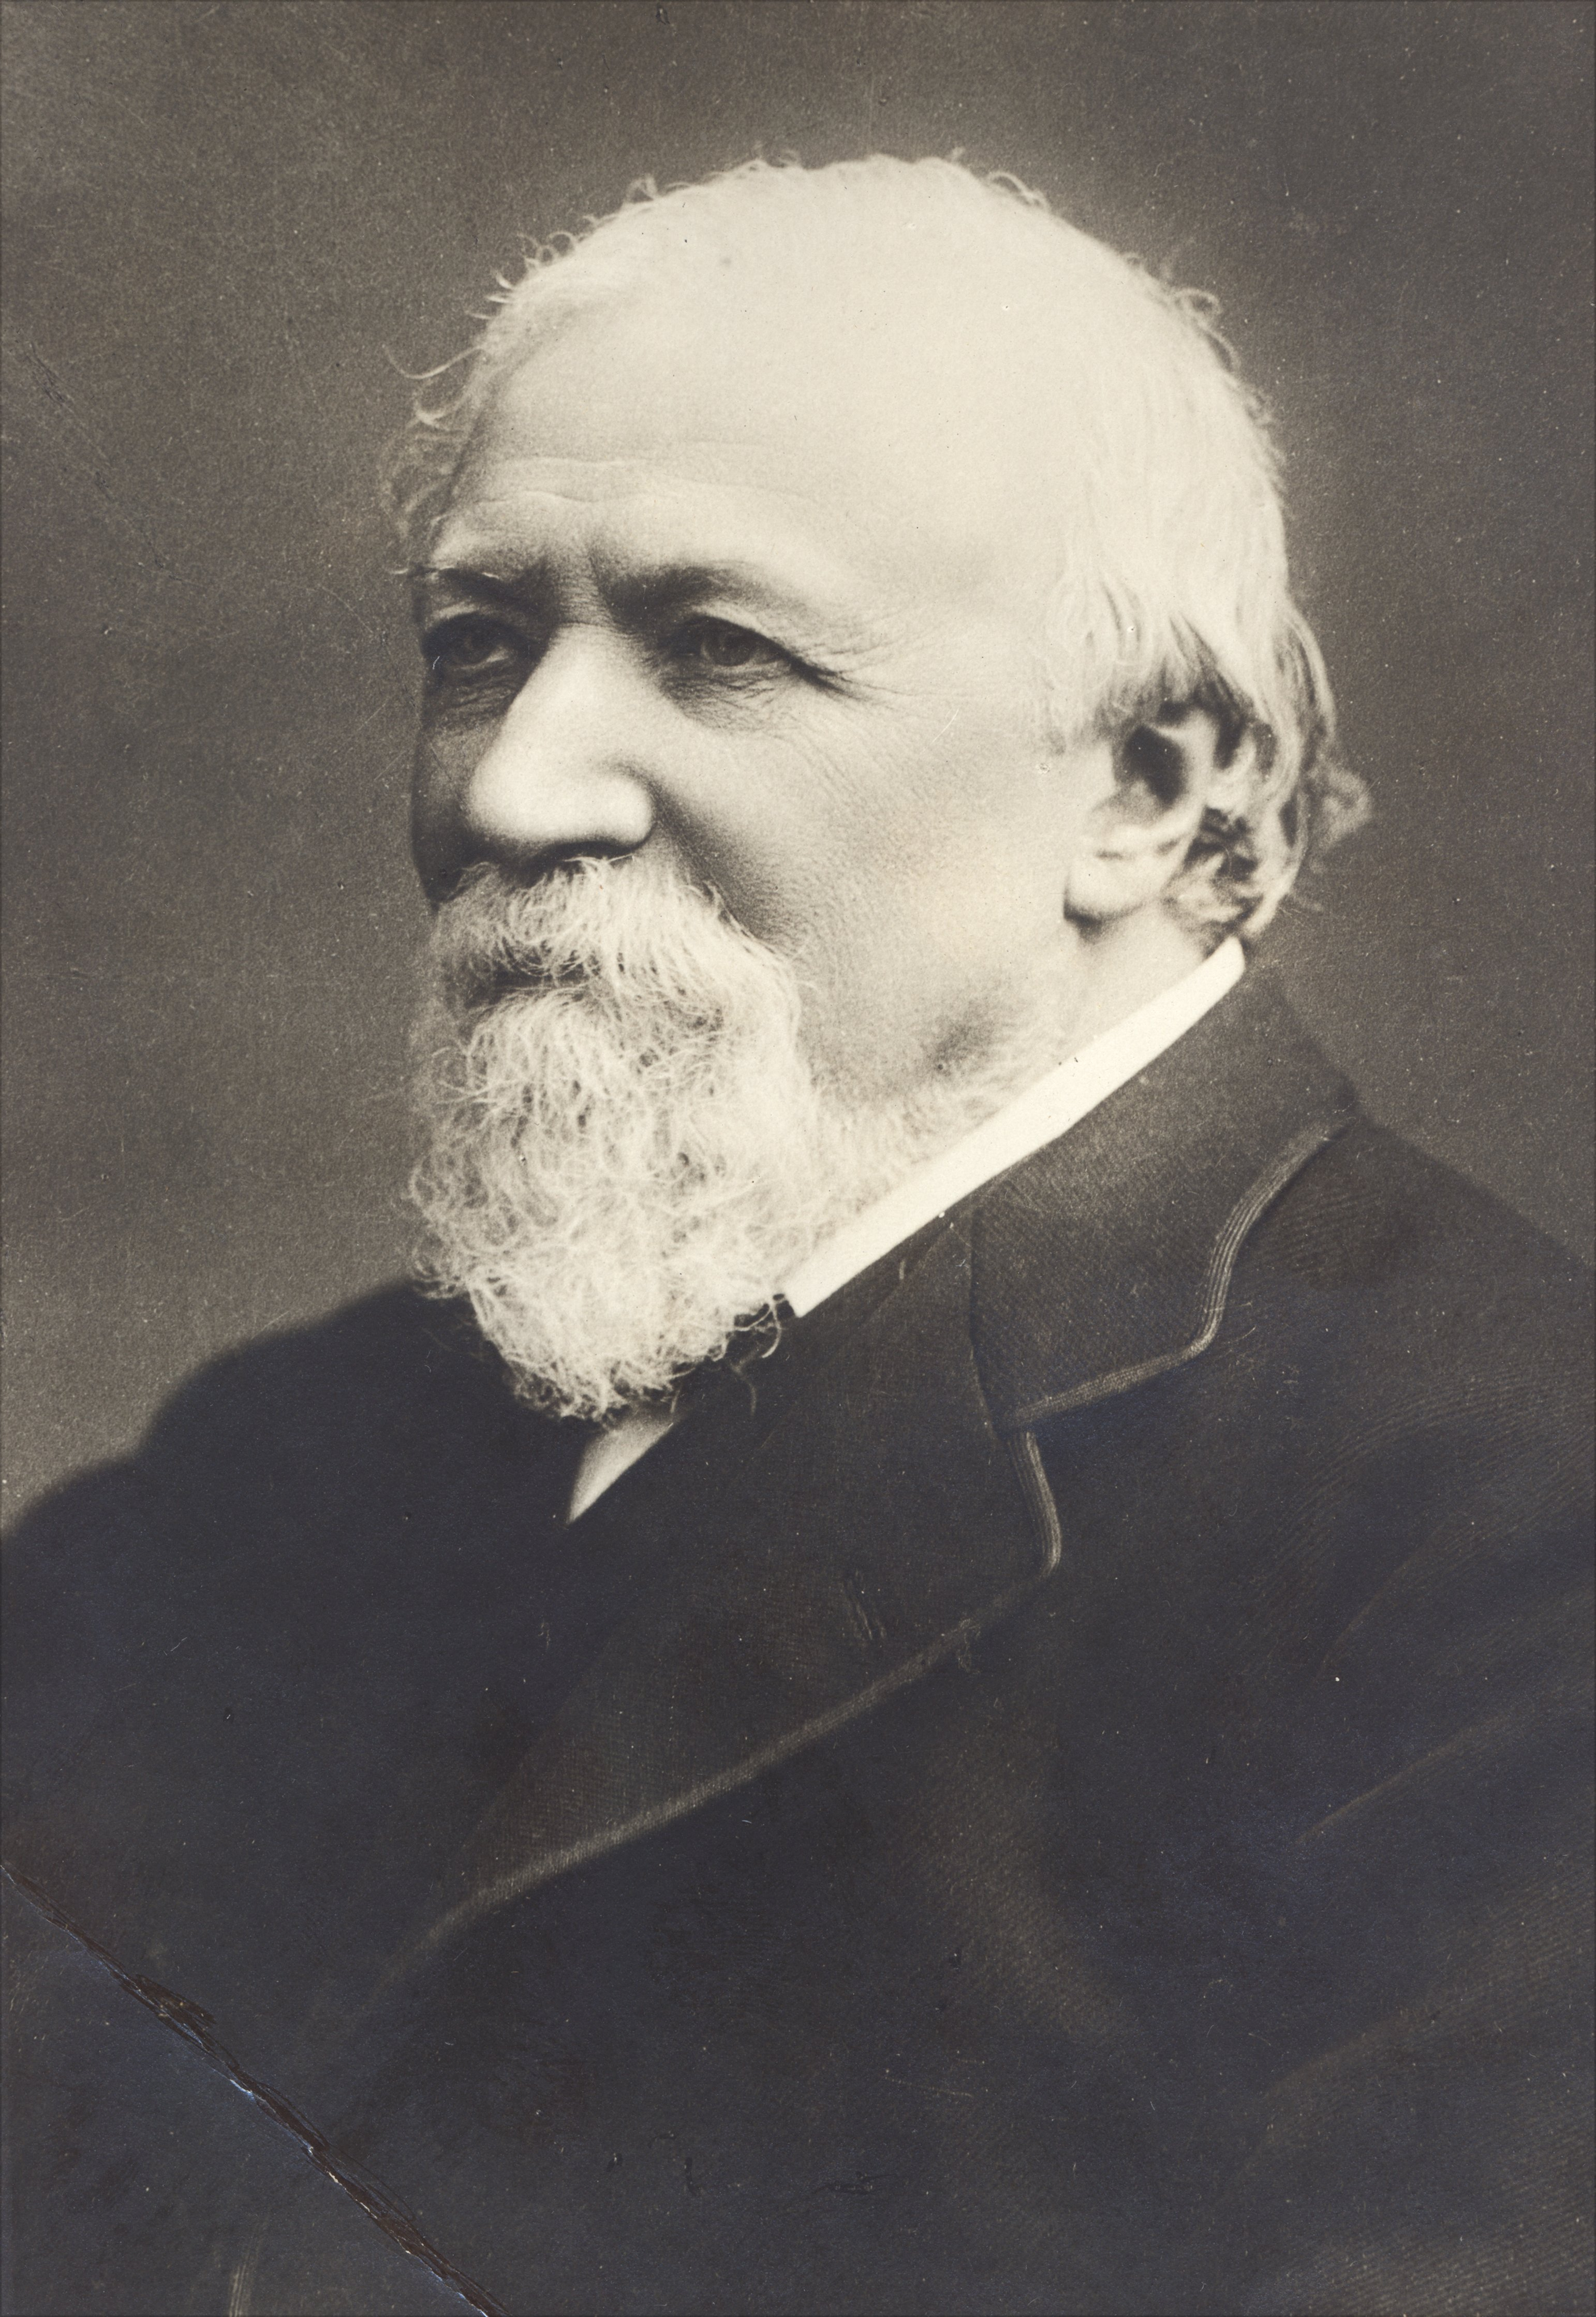 robert browning essays Robert browning, one of the most talented poets of the victorian period, is famous especially for his dramatic monologues often these long poems deal with such issues as love, death, and faith.